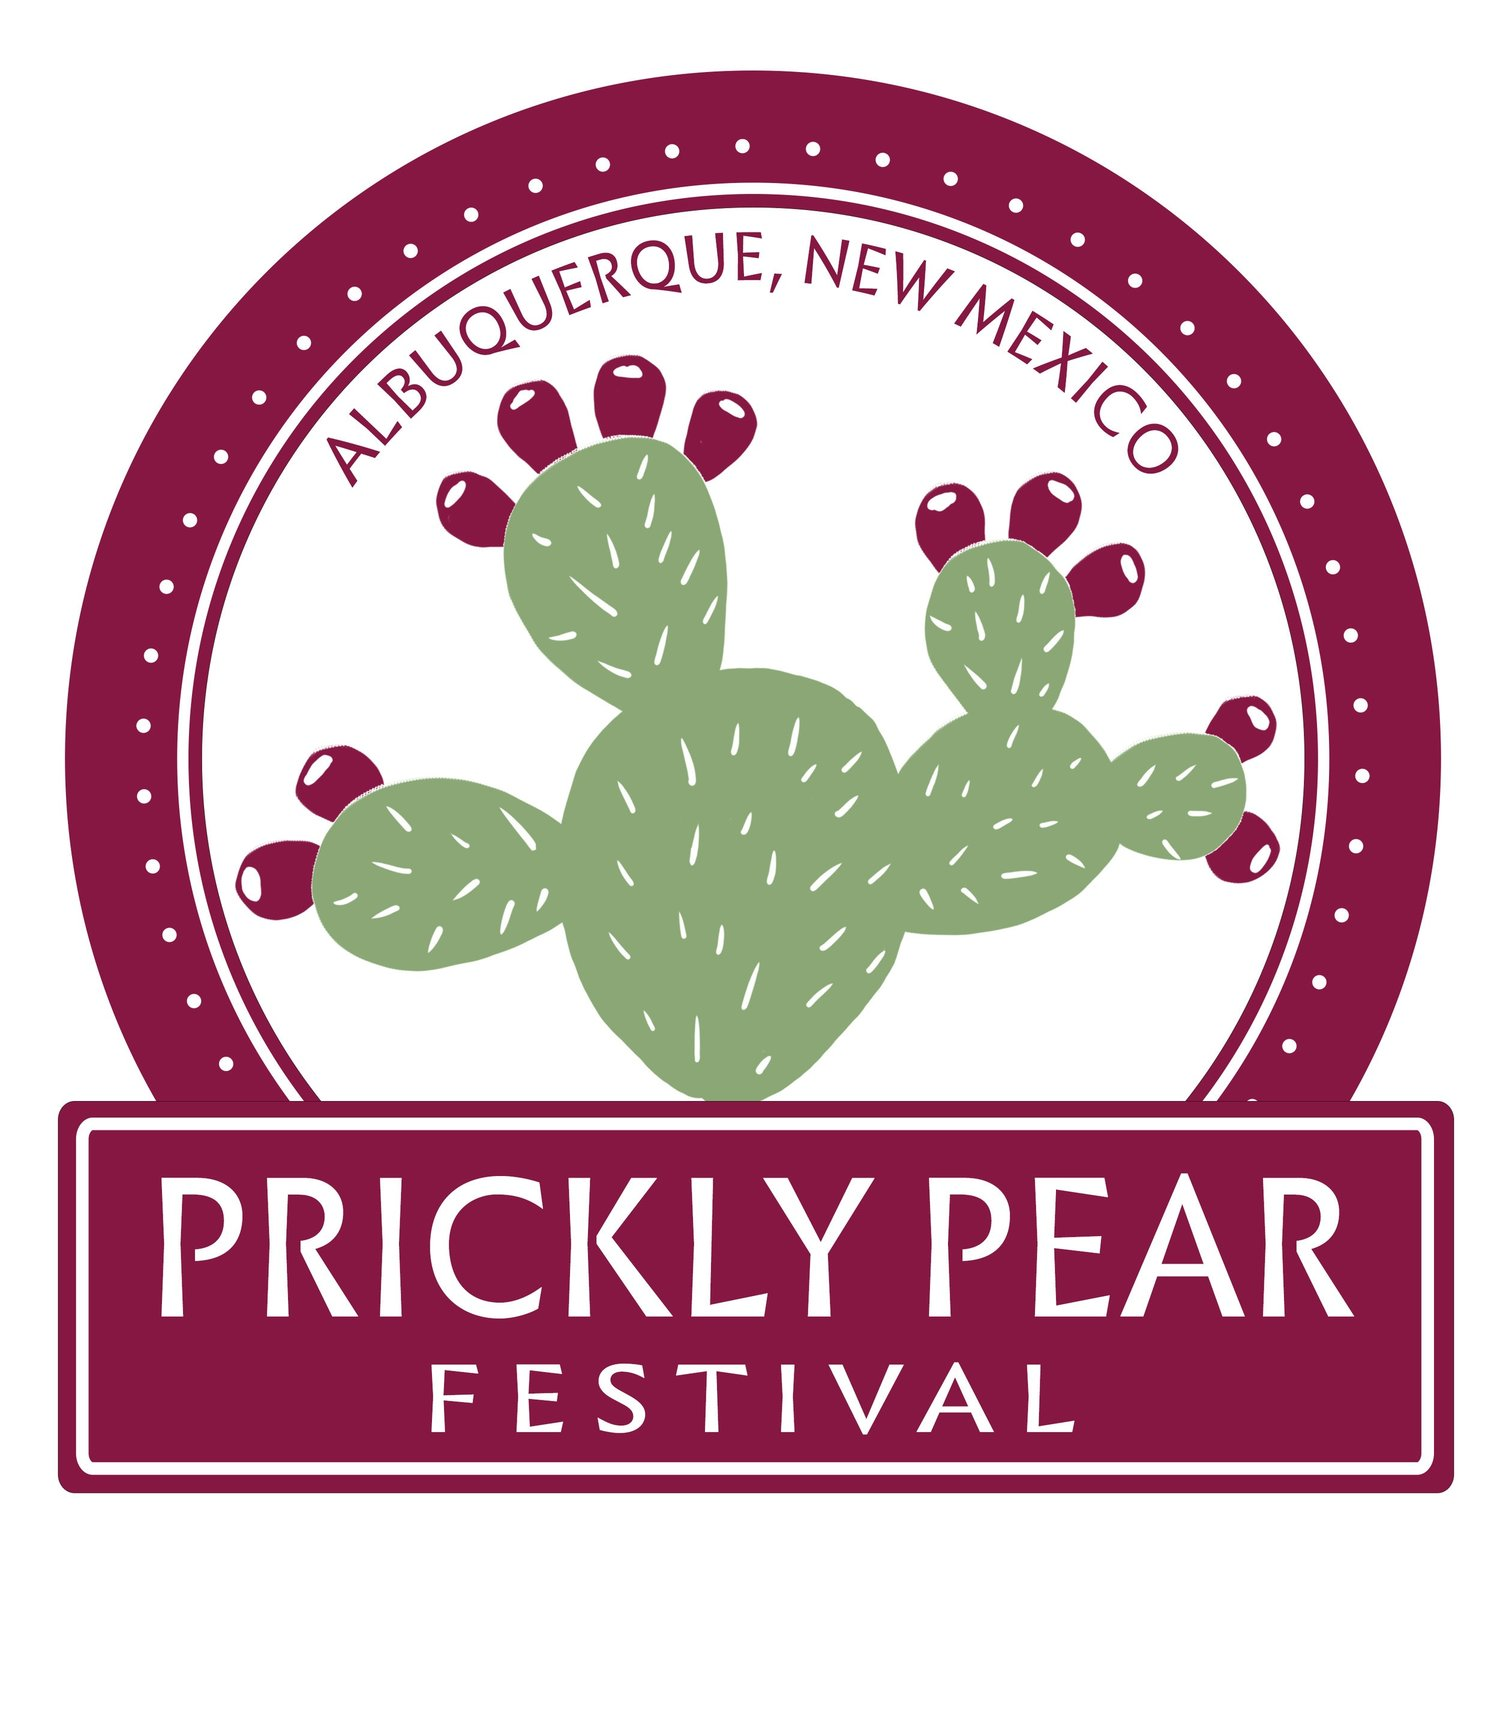 New Mexico Prickly Pear Festival